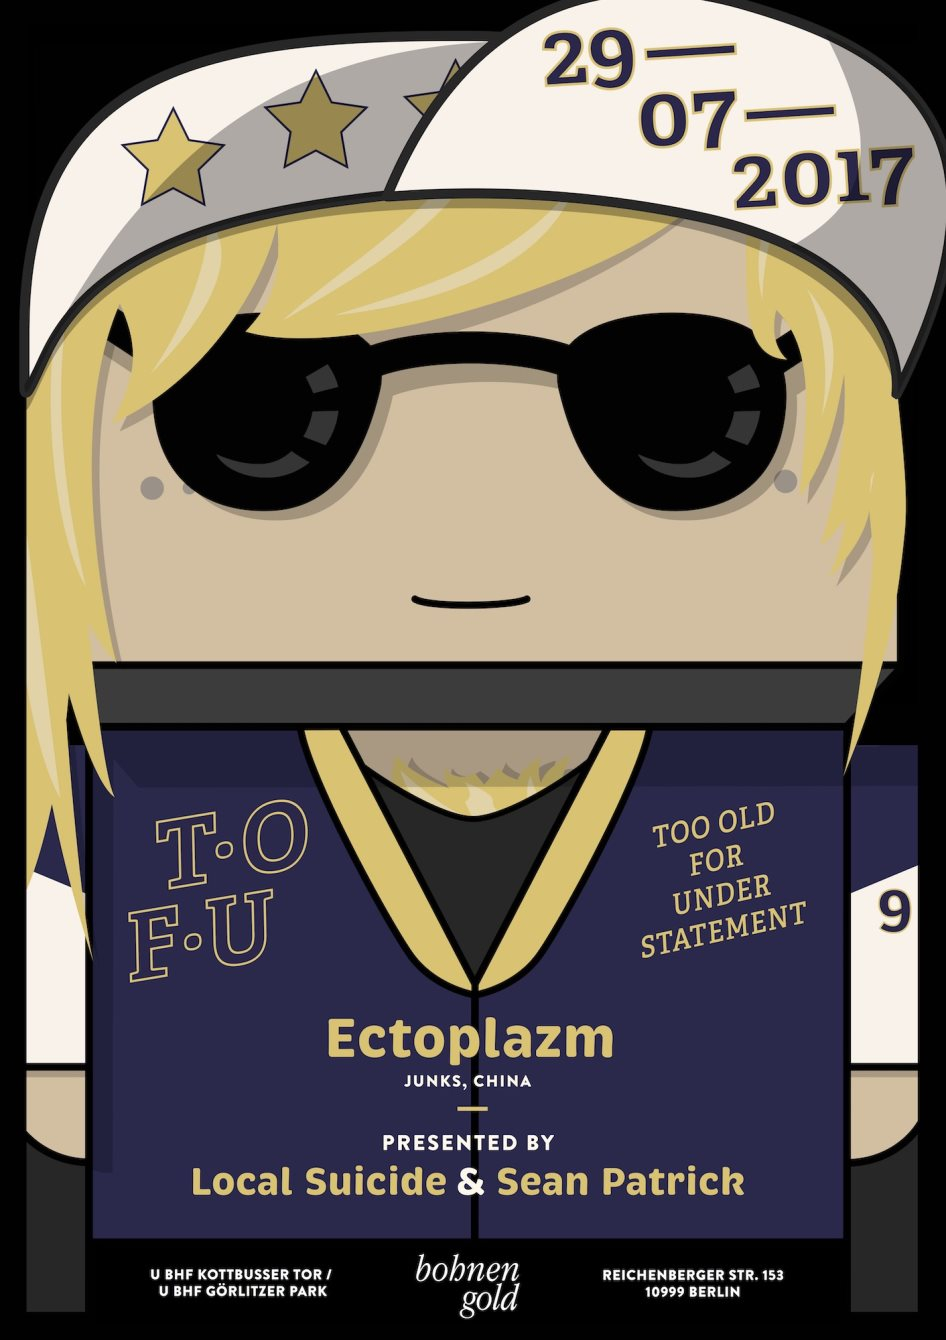 We are Tofu with Ectoplazm - Flyer front